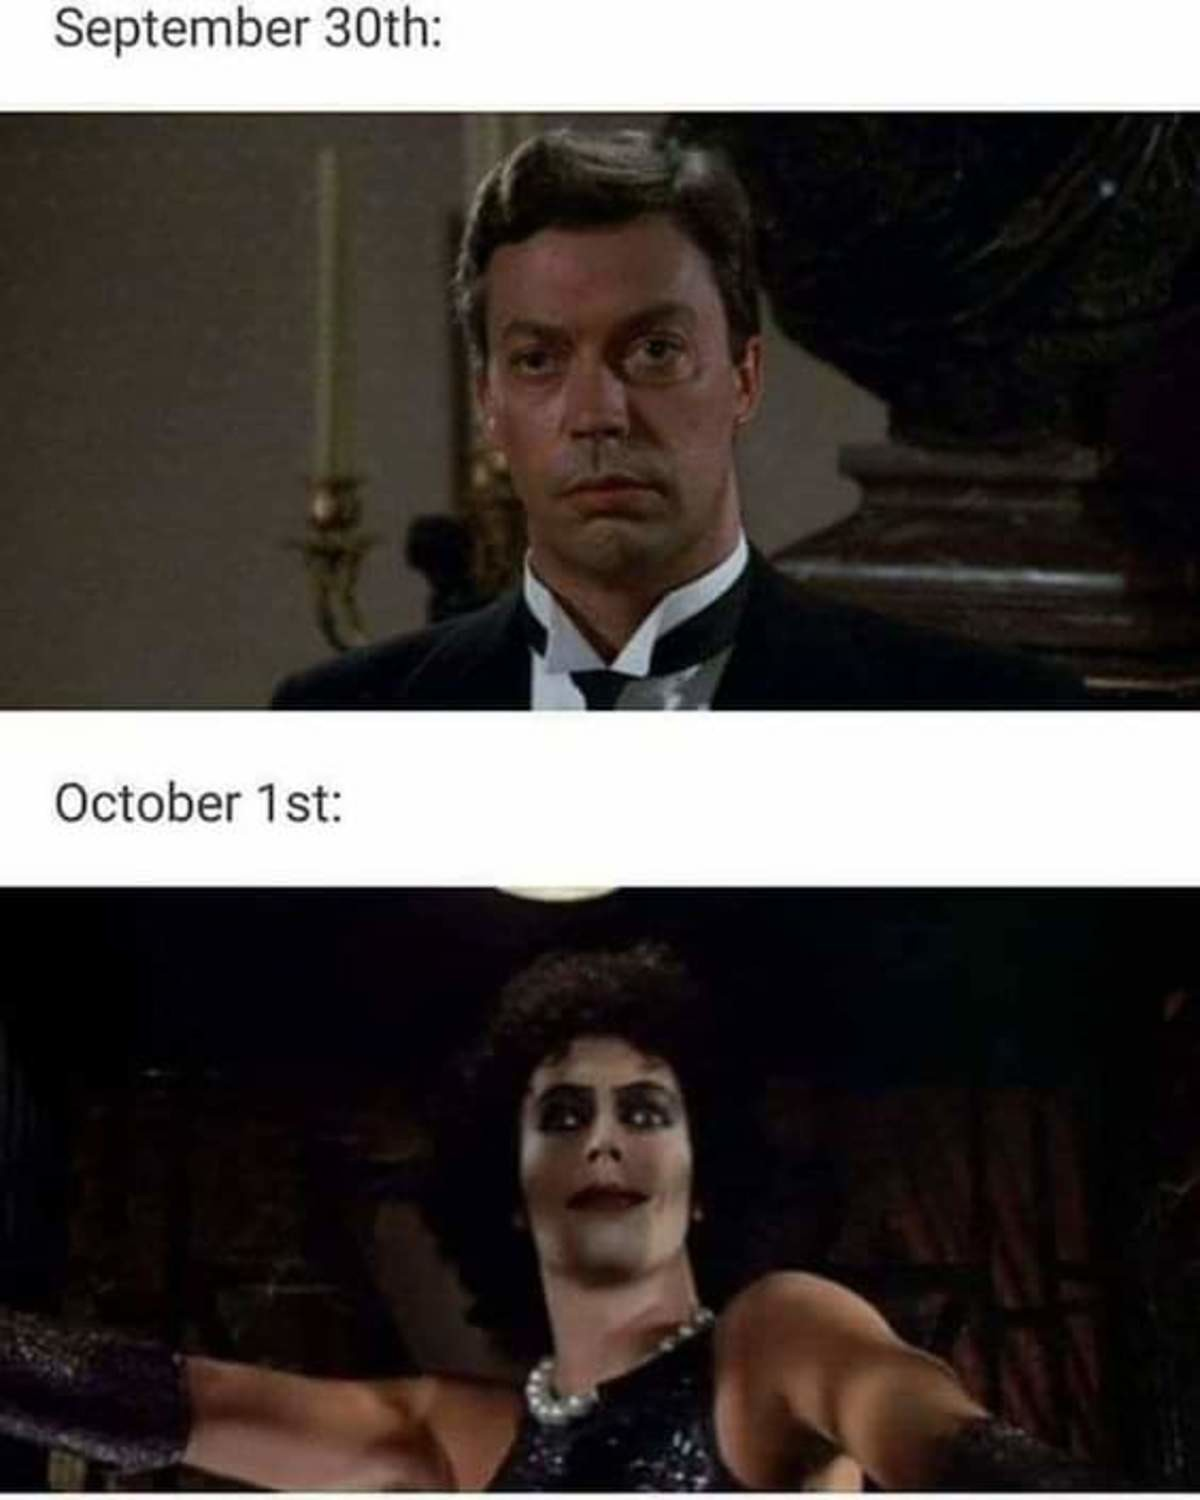 Oh the antici. .. It was actually because my mom showed me Rocky Horror Picture Show as a kid that I realized as an adult I was never comfortable with drag or any variation there